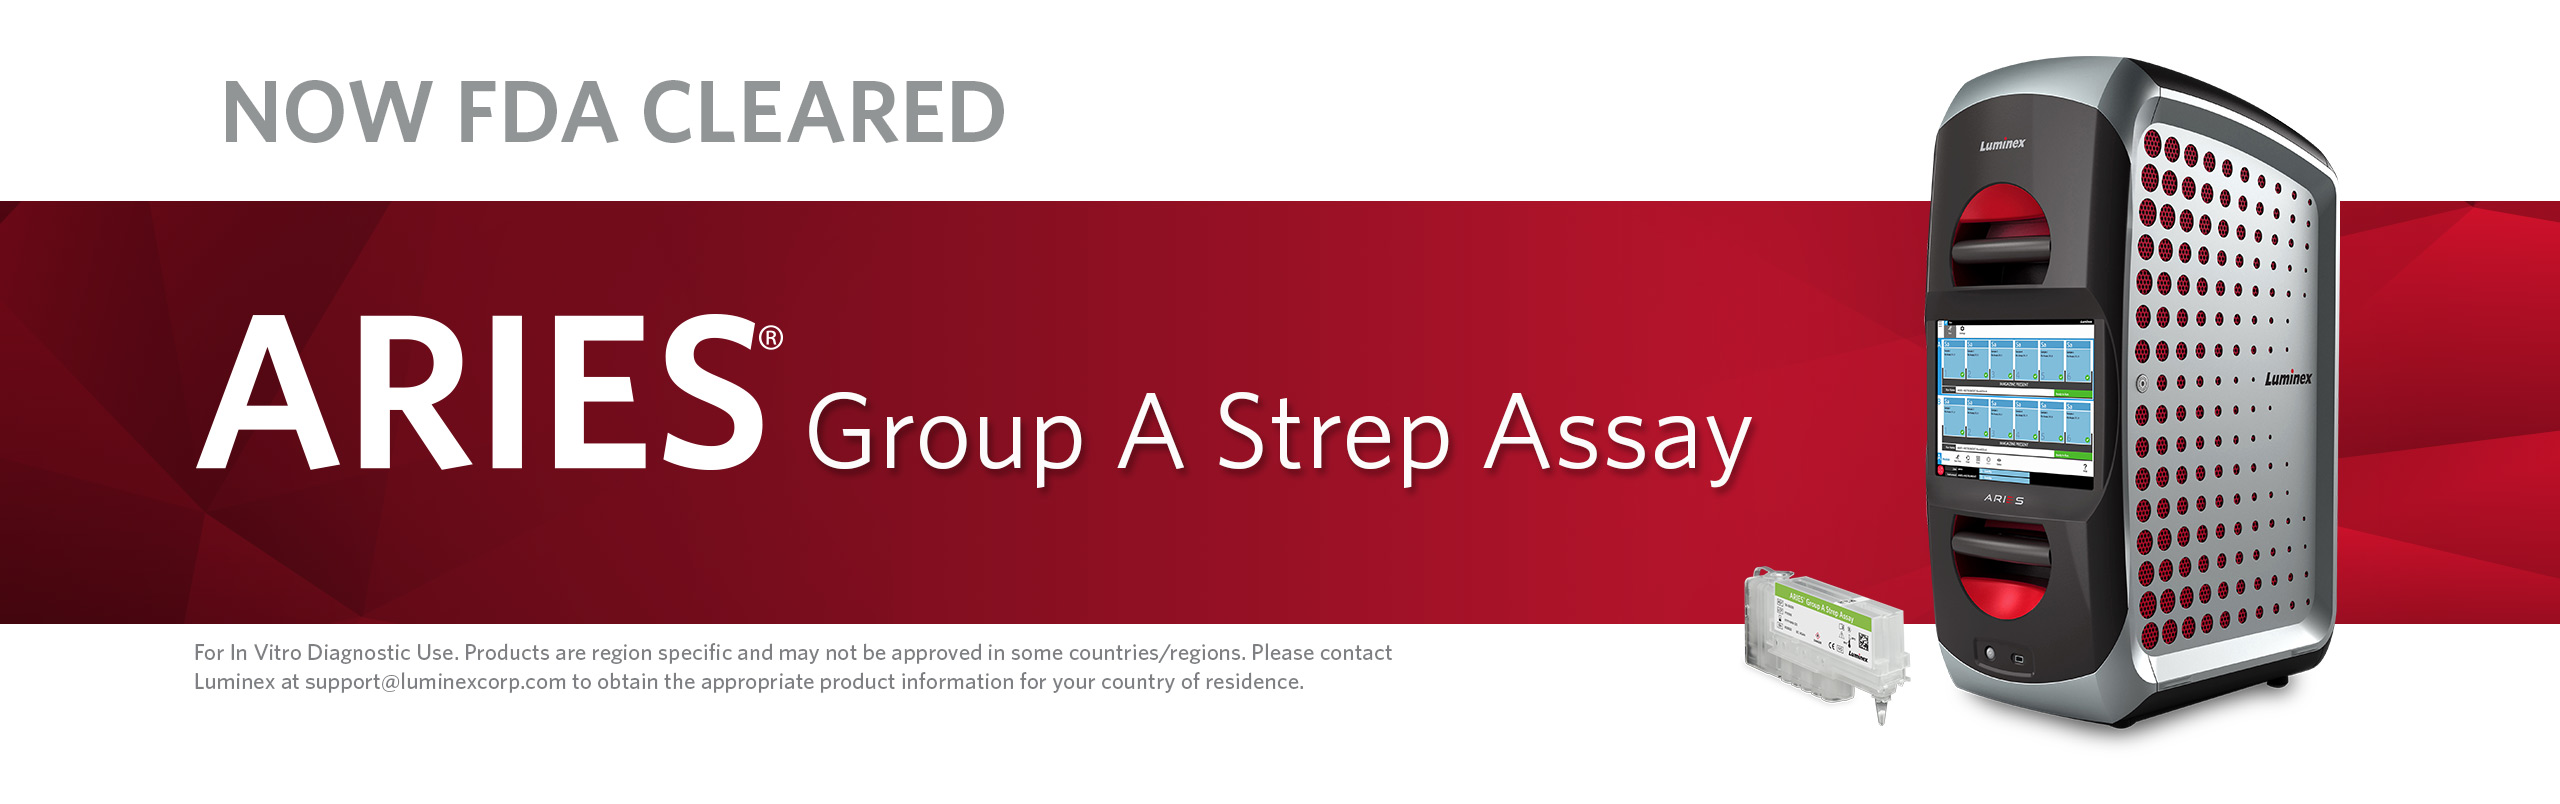 Now FDA Cleared: ARIES® Group A Strep Assay